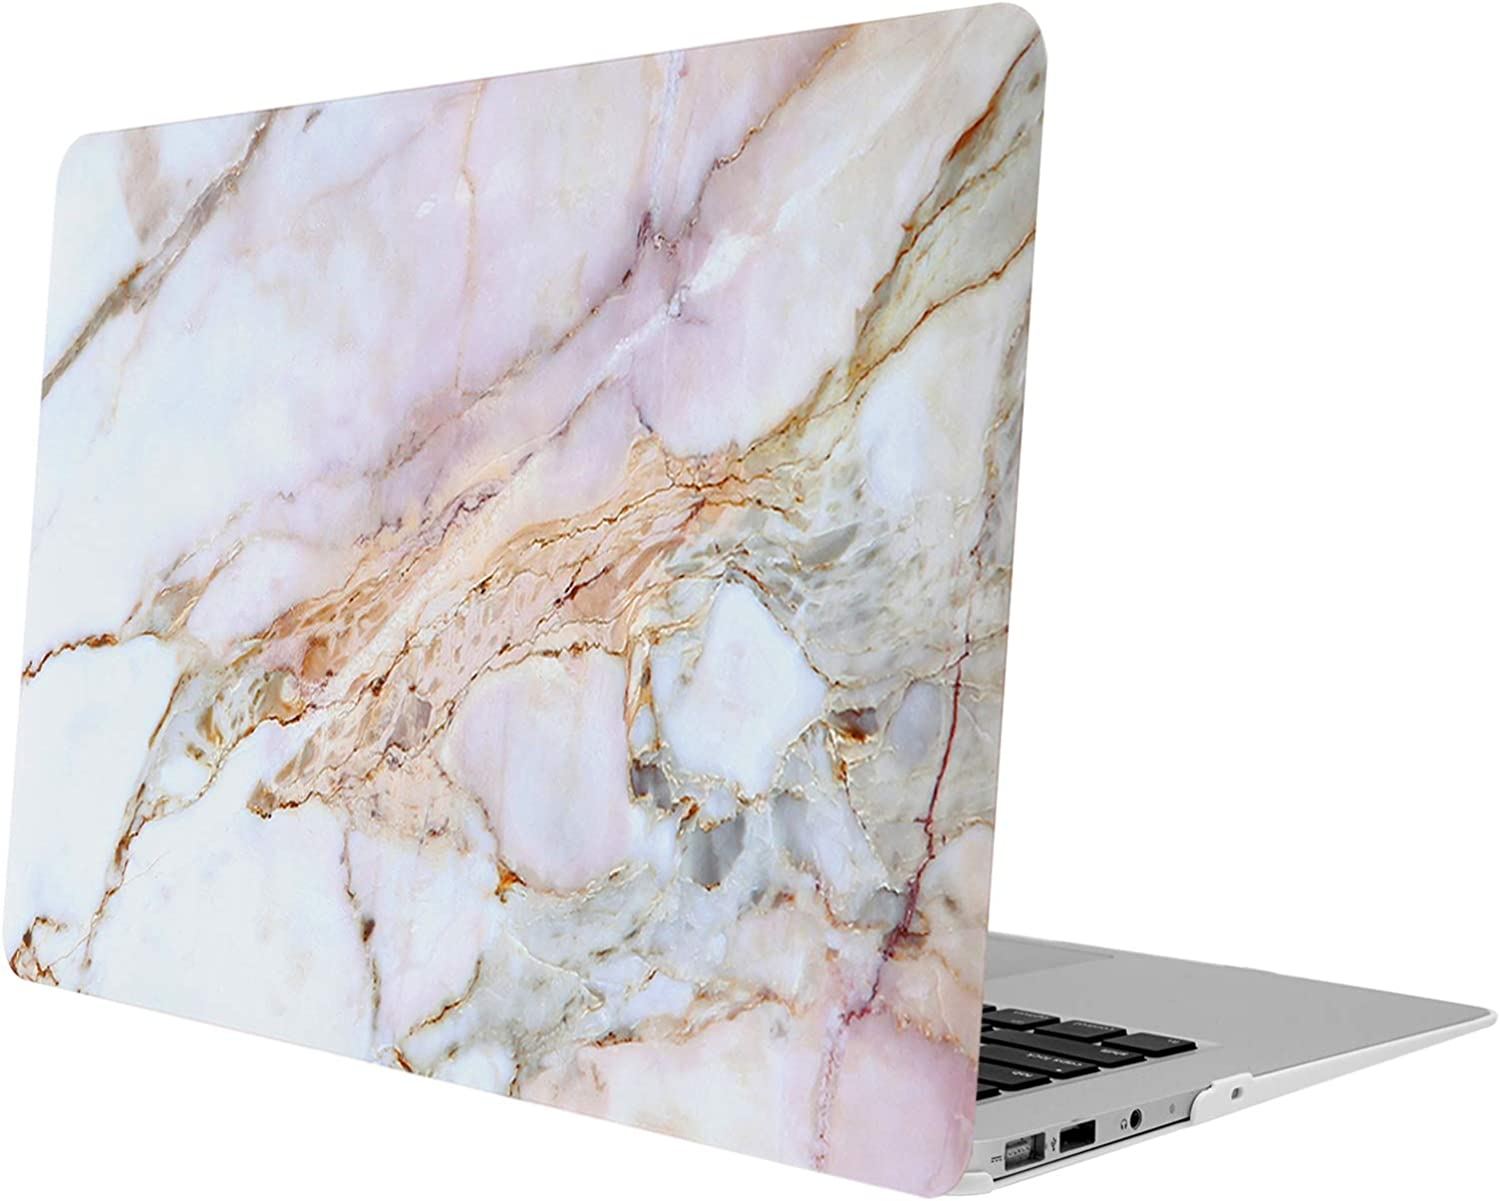 iDonzon MacBook Air 13 inch Case (A1932, 2019 2018 Release), Soft-Touch Matte Plastic Hard Protective Cover Only Compatible Mac Air 13.3 inch with Retina Display Touch ID- Colorful Marble